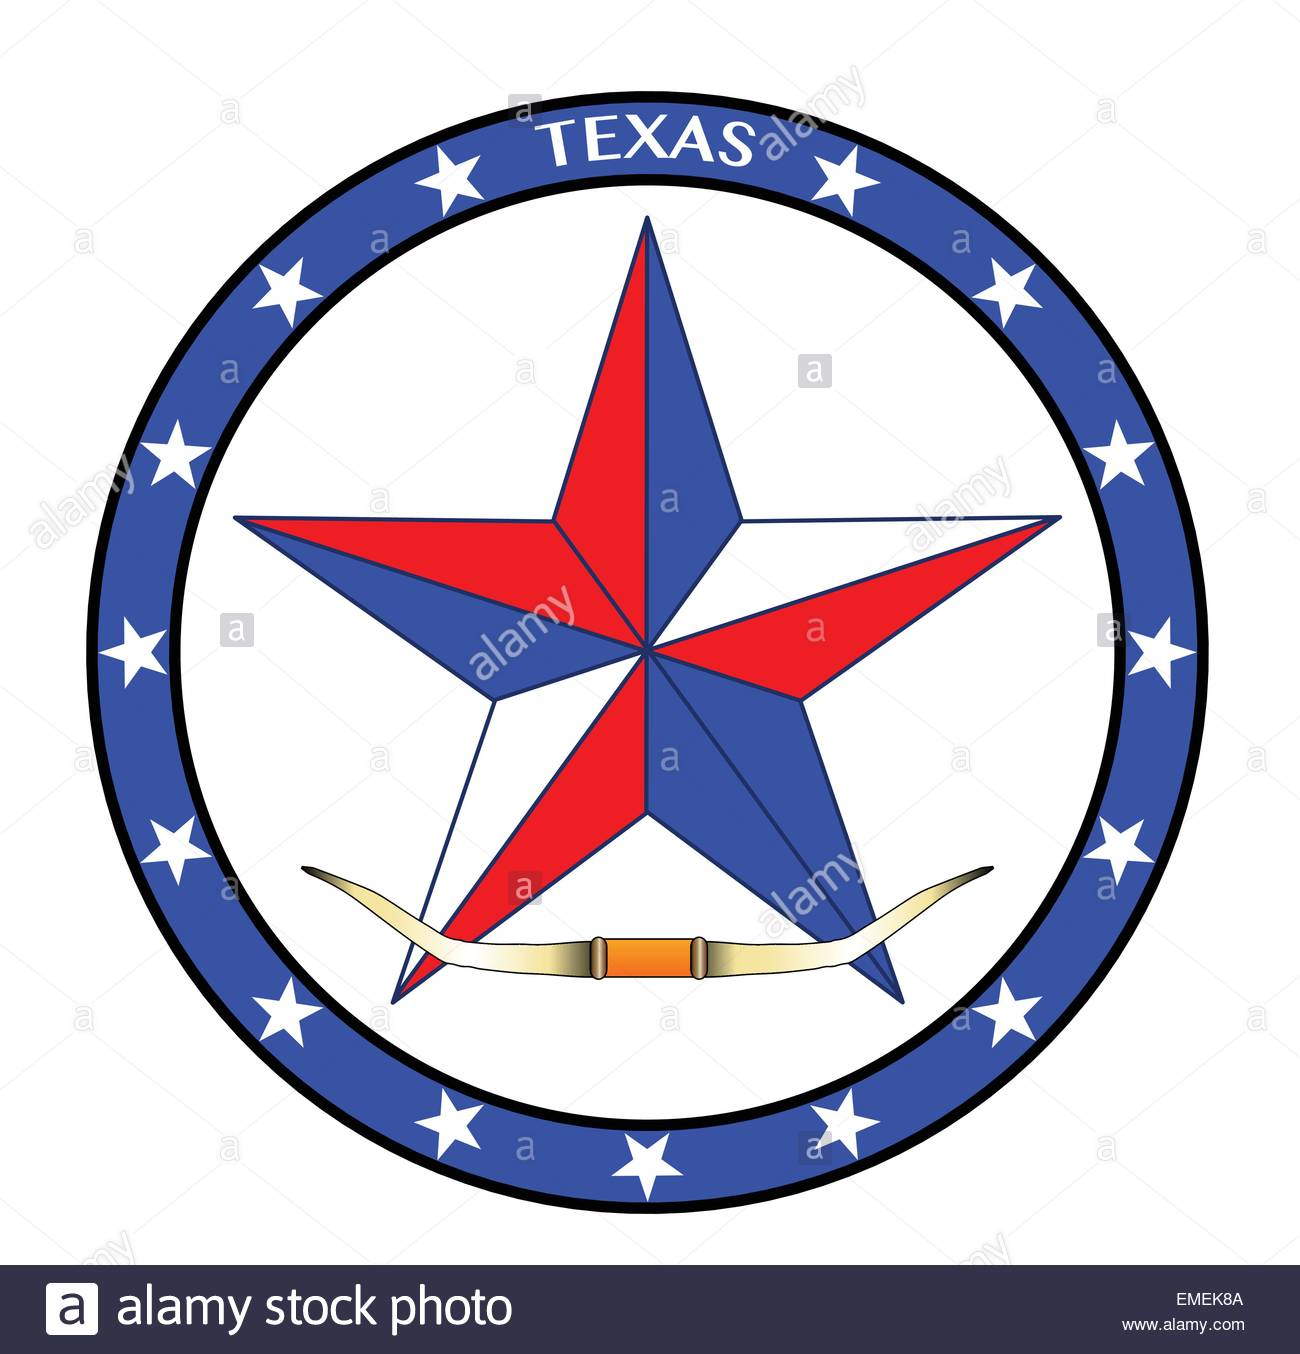 1300x1354 Texas Star And Steer Horns Stock Vector Art Amp Illustration, Vector